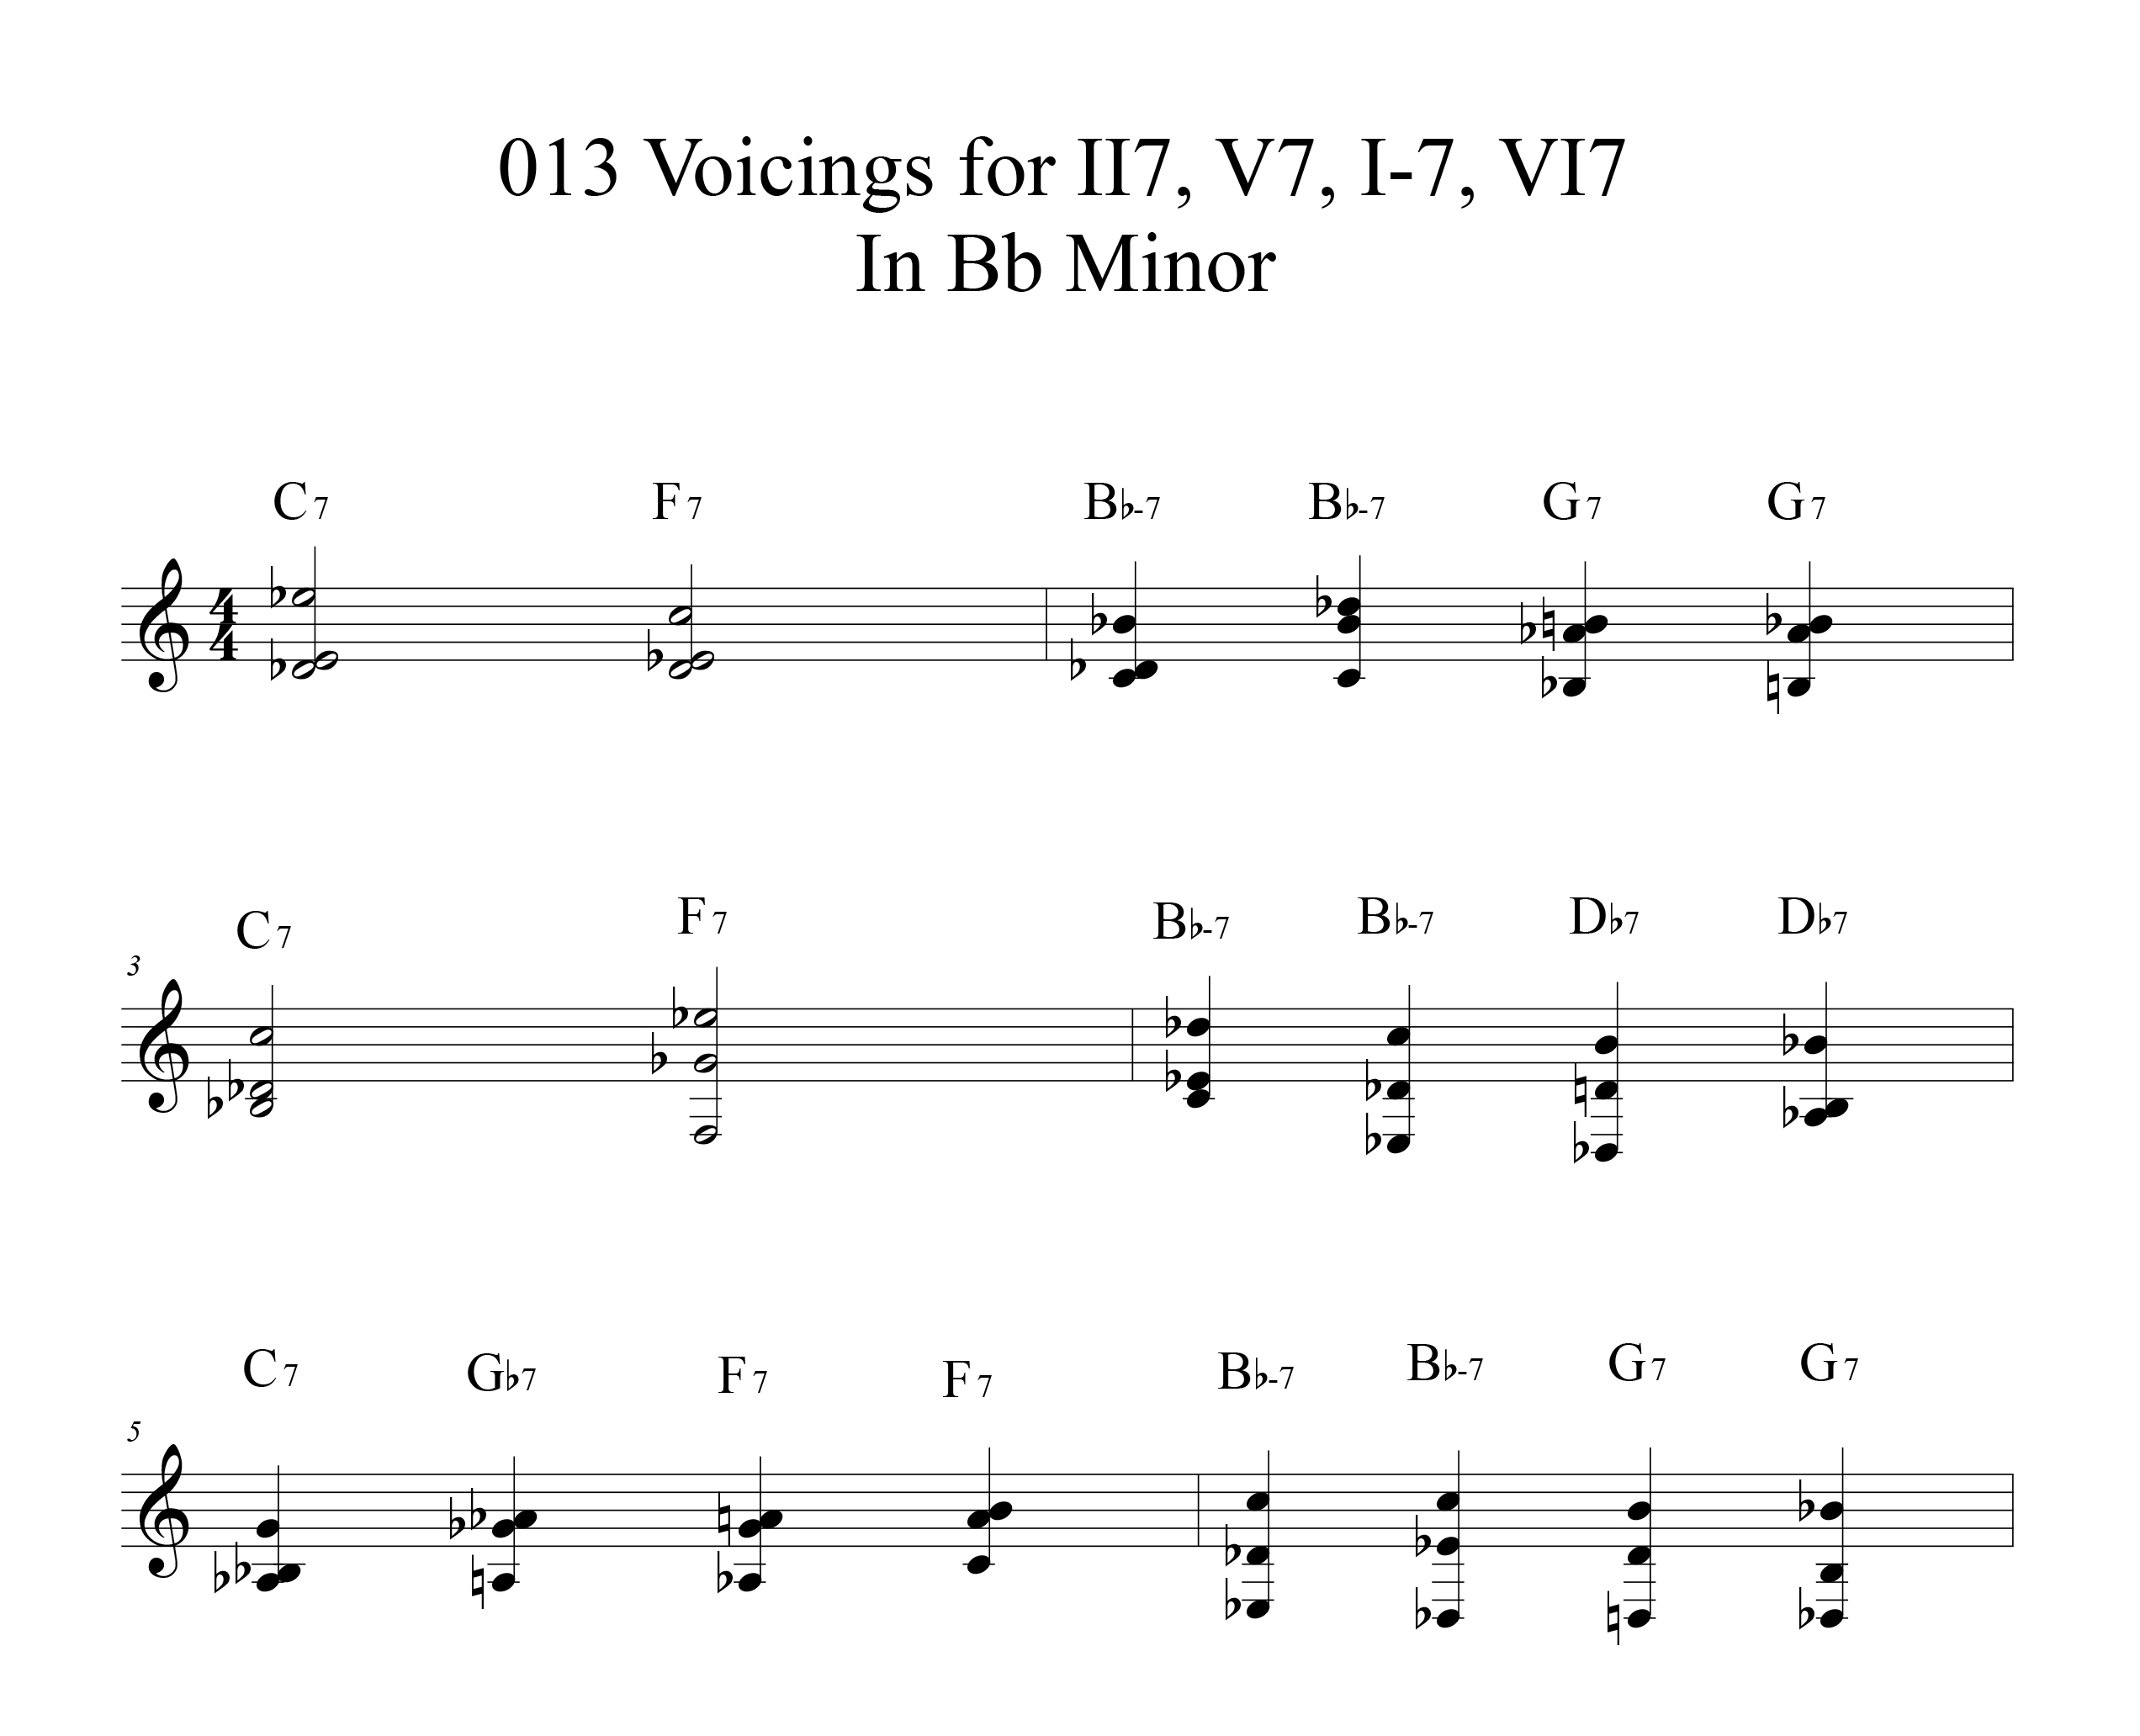 Applying-013-chord-voicings-key-of-Bb-etude by Bruce Arnold for Muse Eek Publishing Company